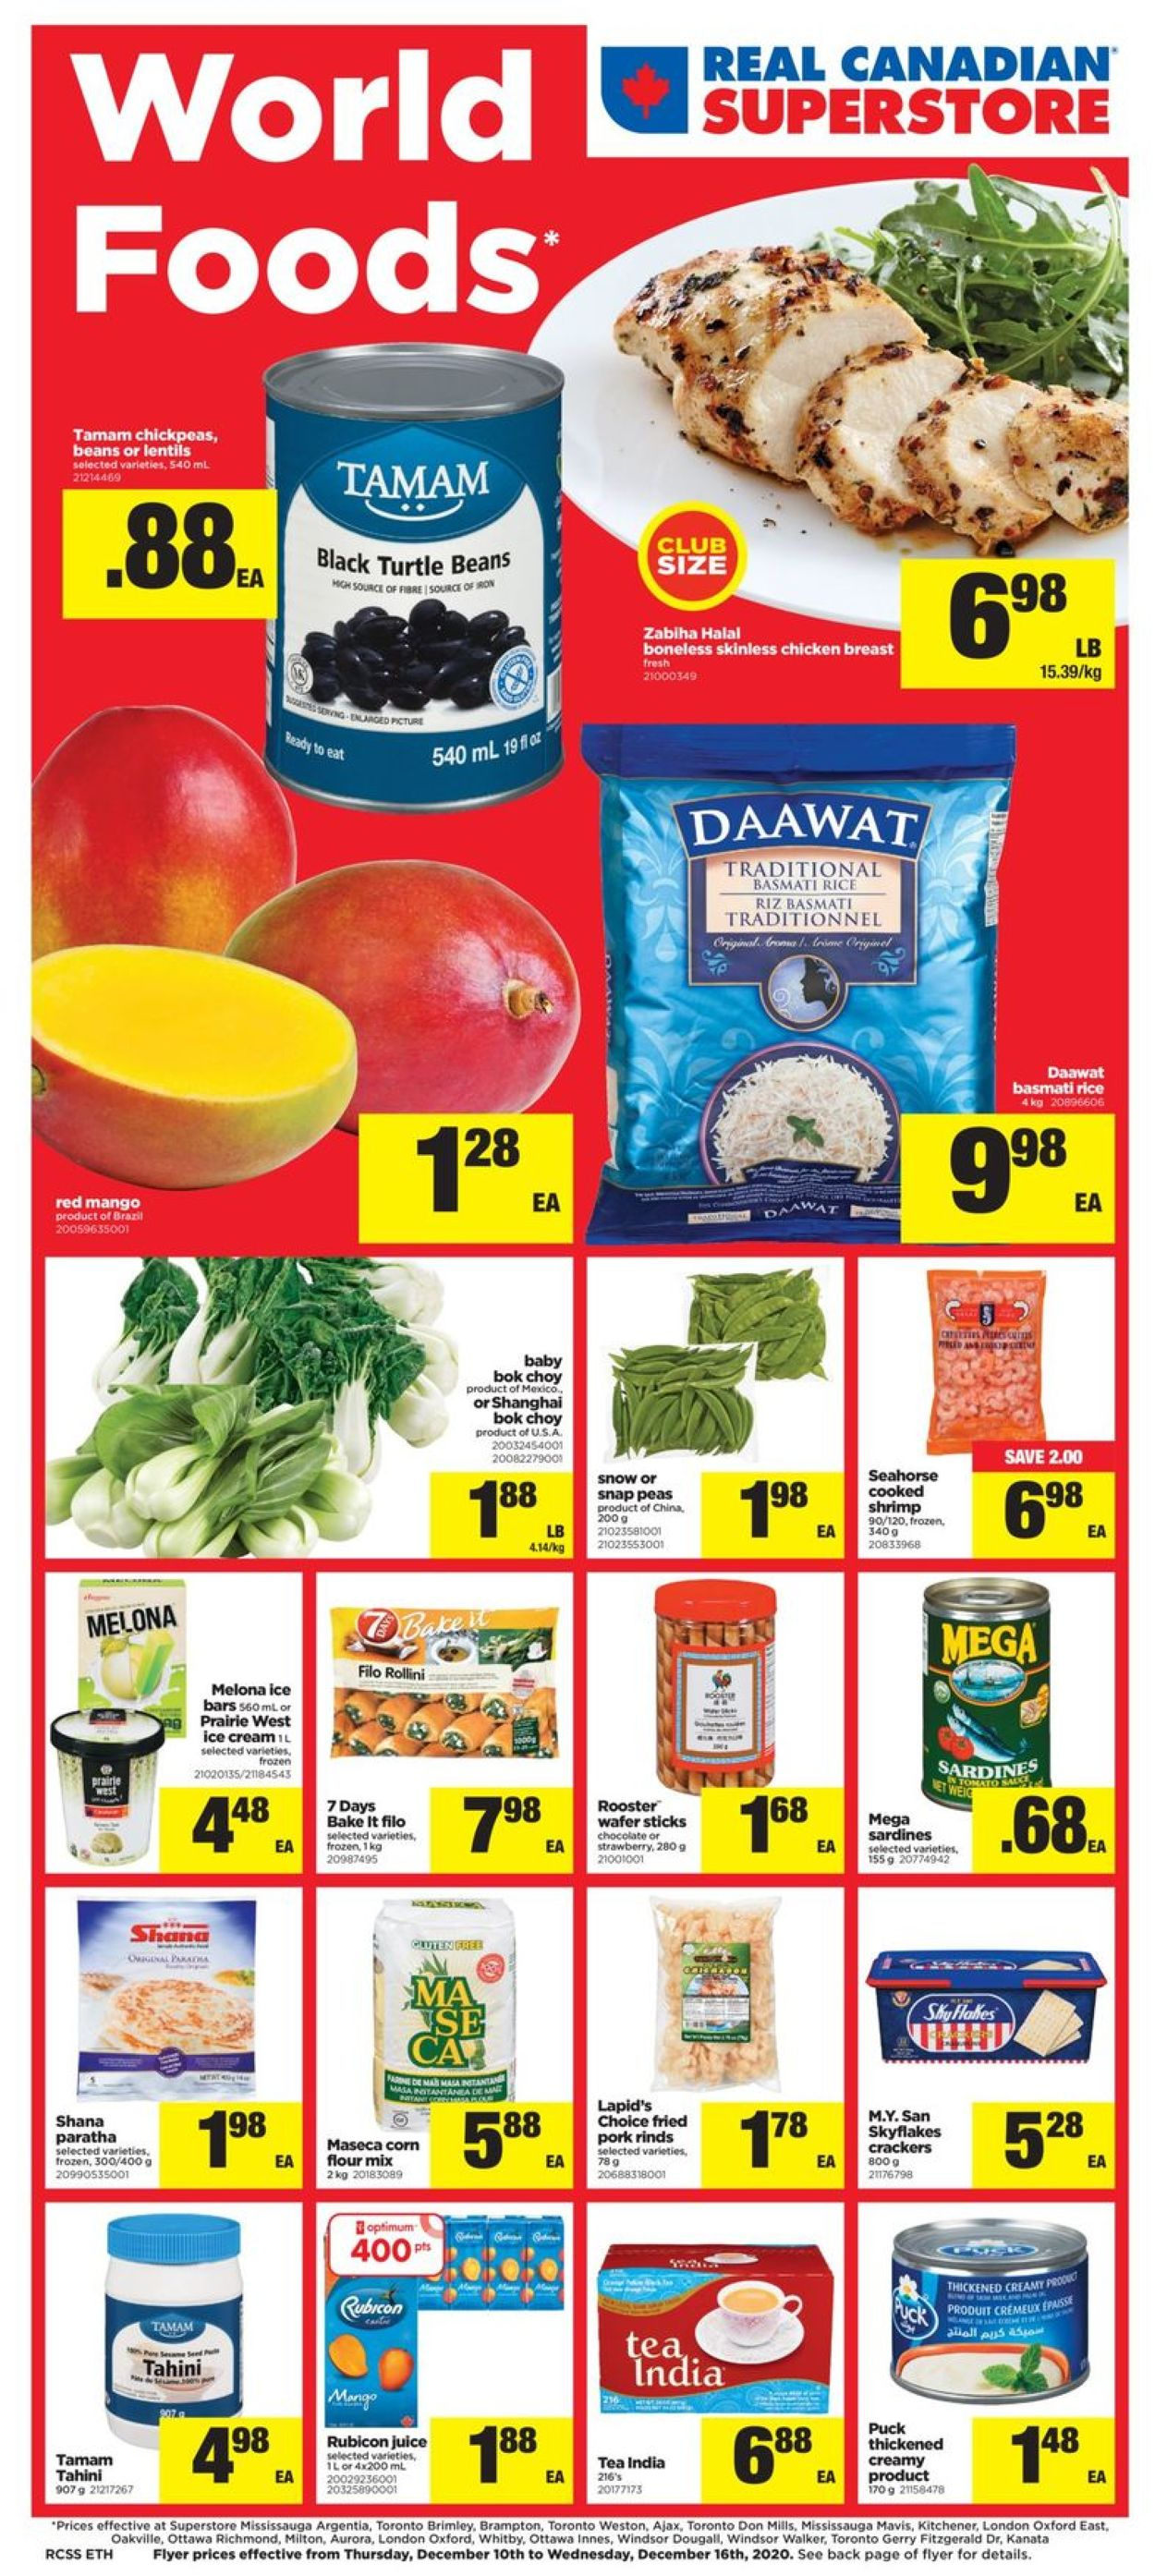 Real Canadian Superstore - Holiday 2020 Flyer - 12/10-12/16/2020